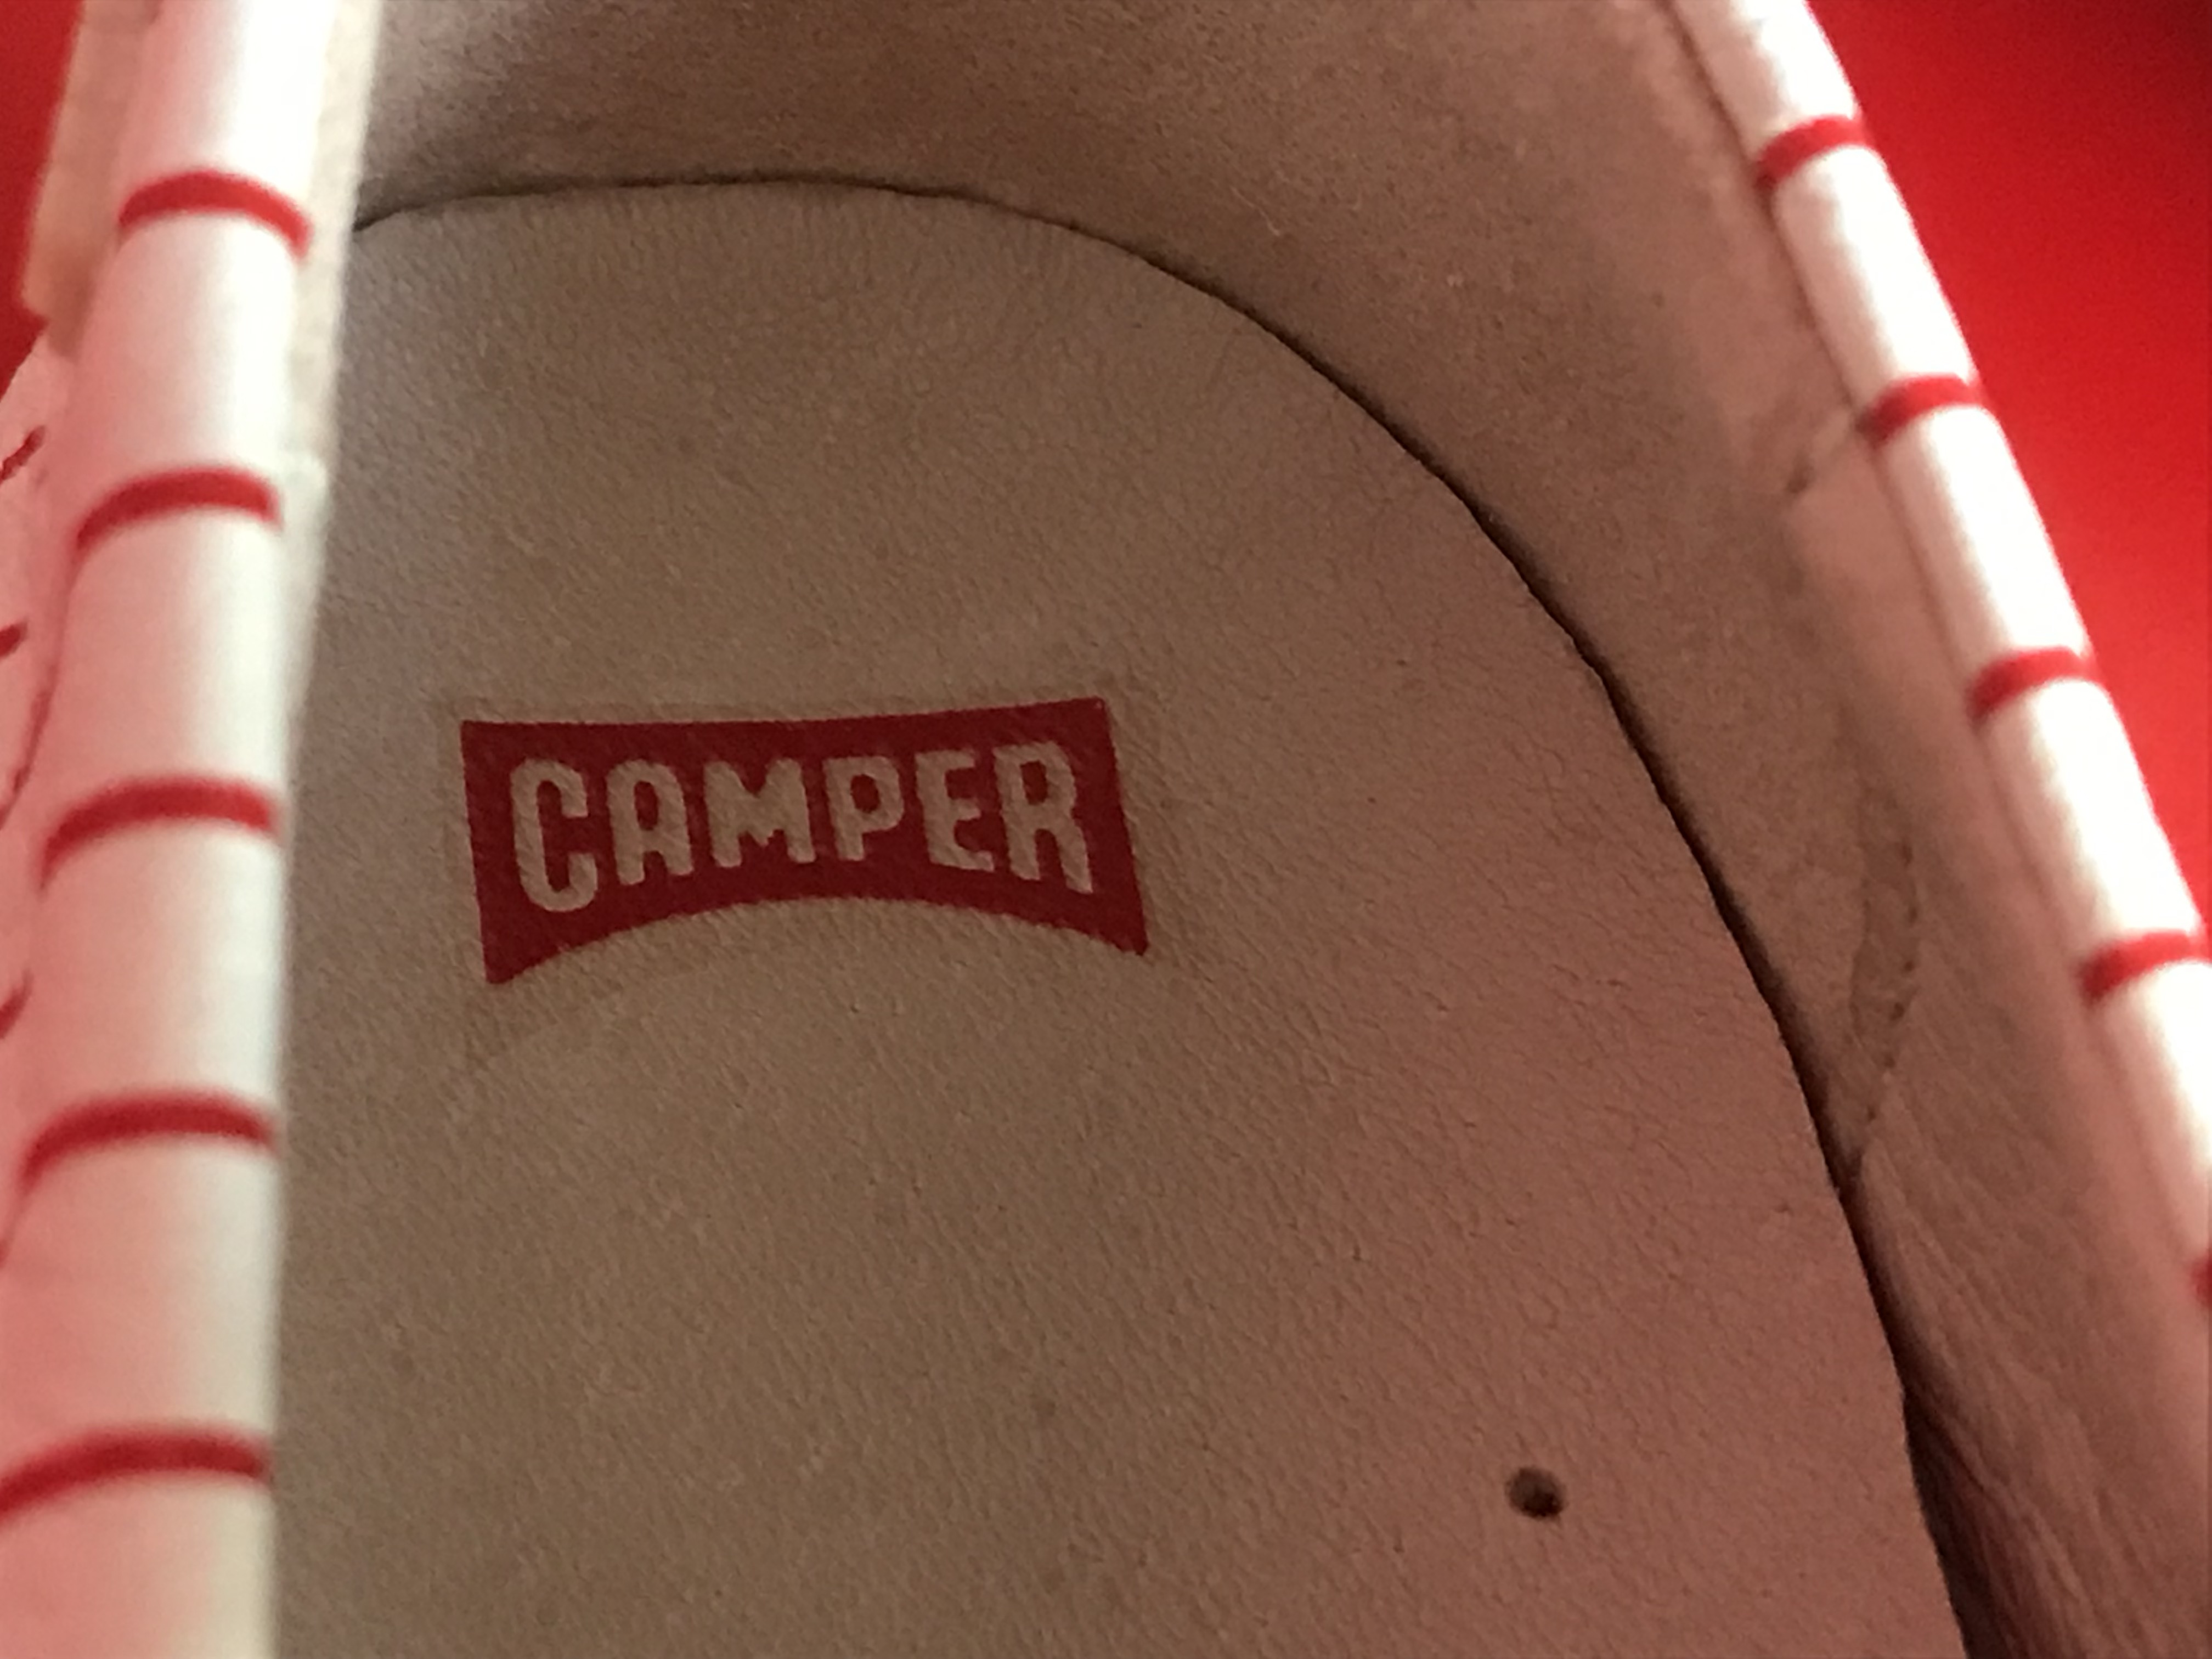 Camper Twins shoes for girls Right Shoe